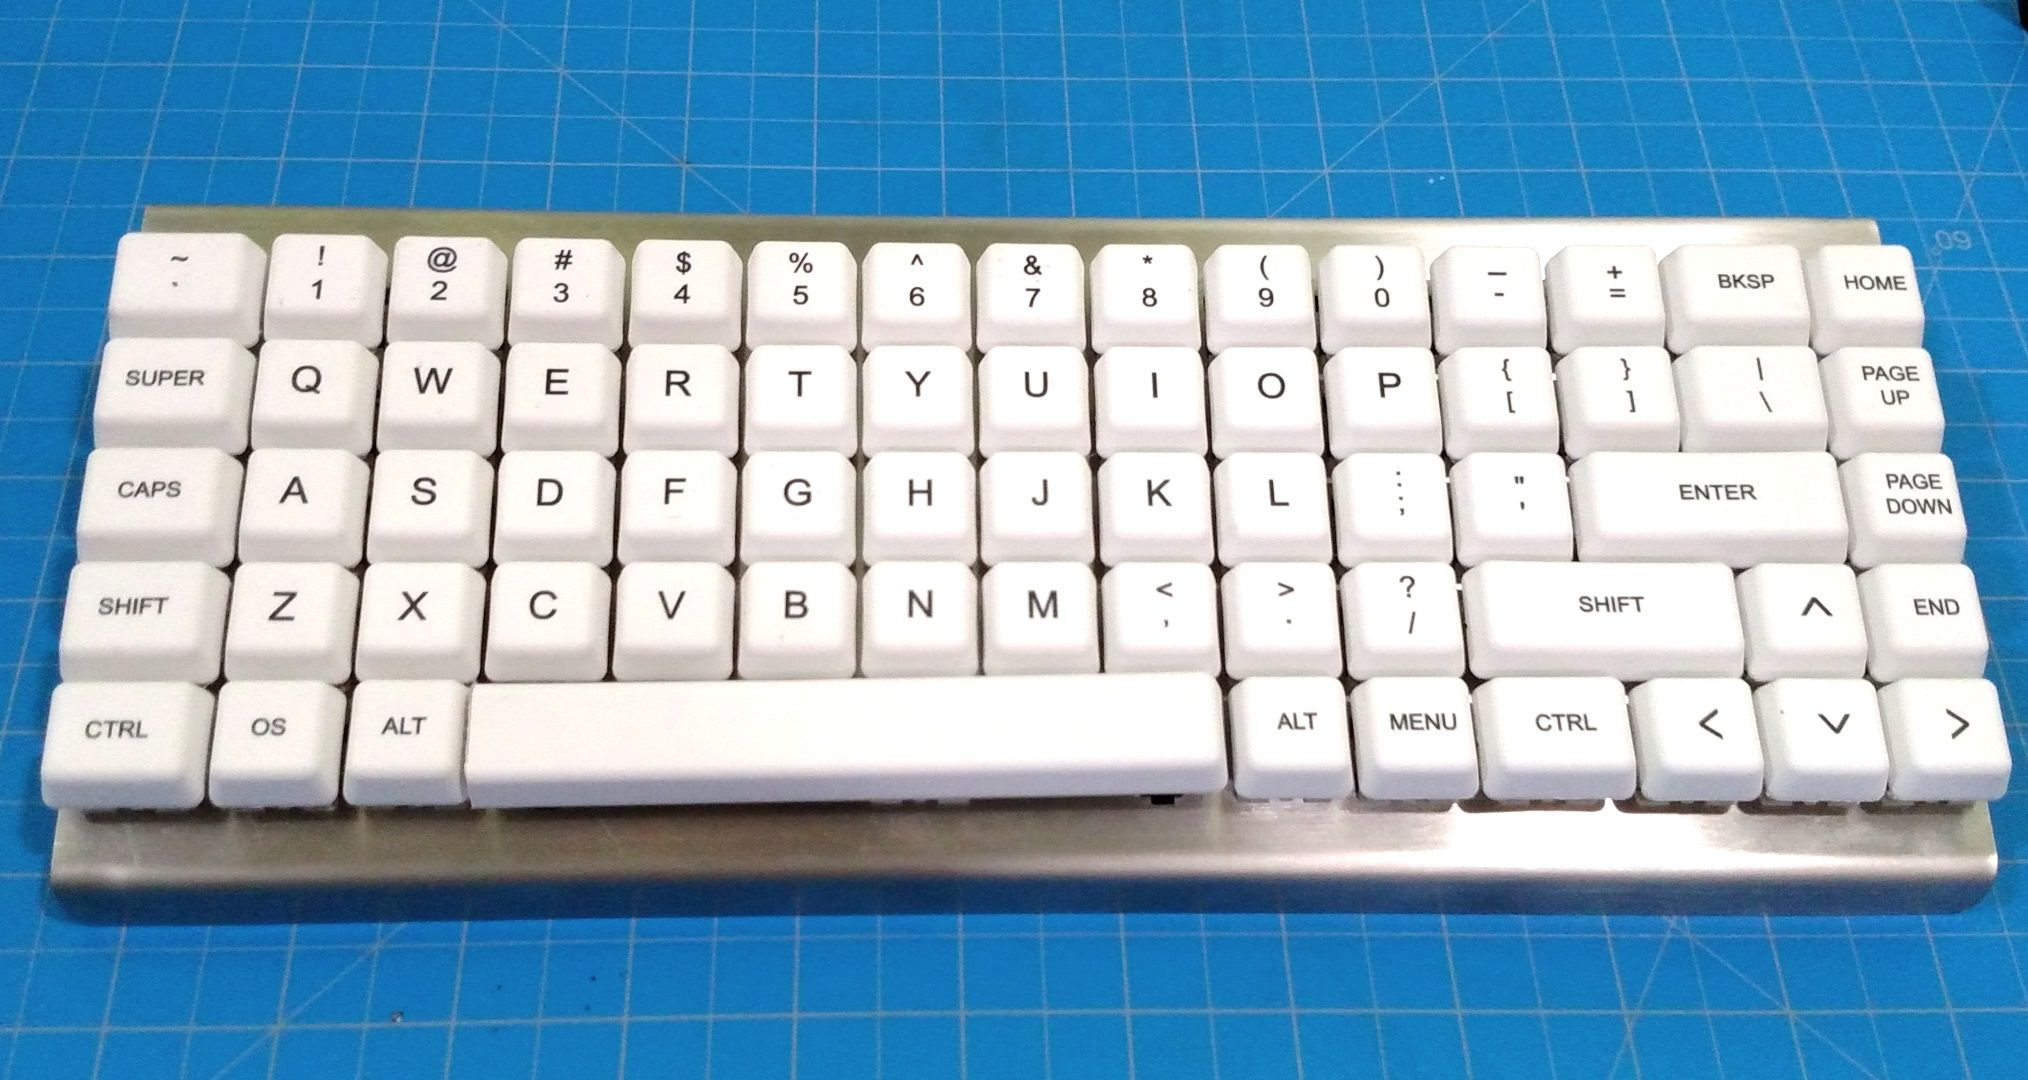 SuperSonik319 - [photos] Hand-wired Backlit Ortholinear